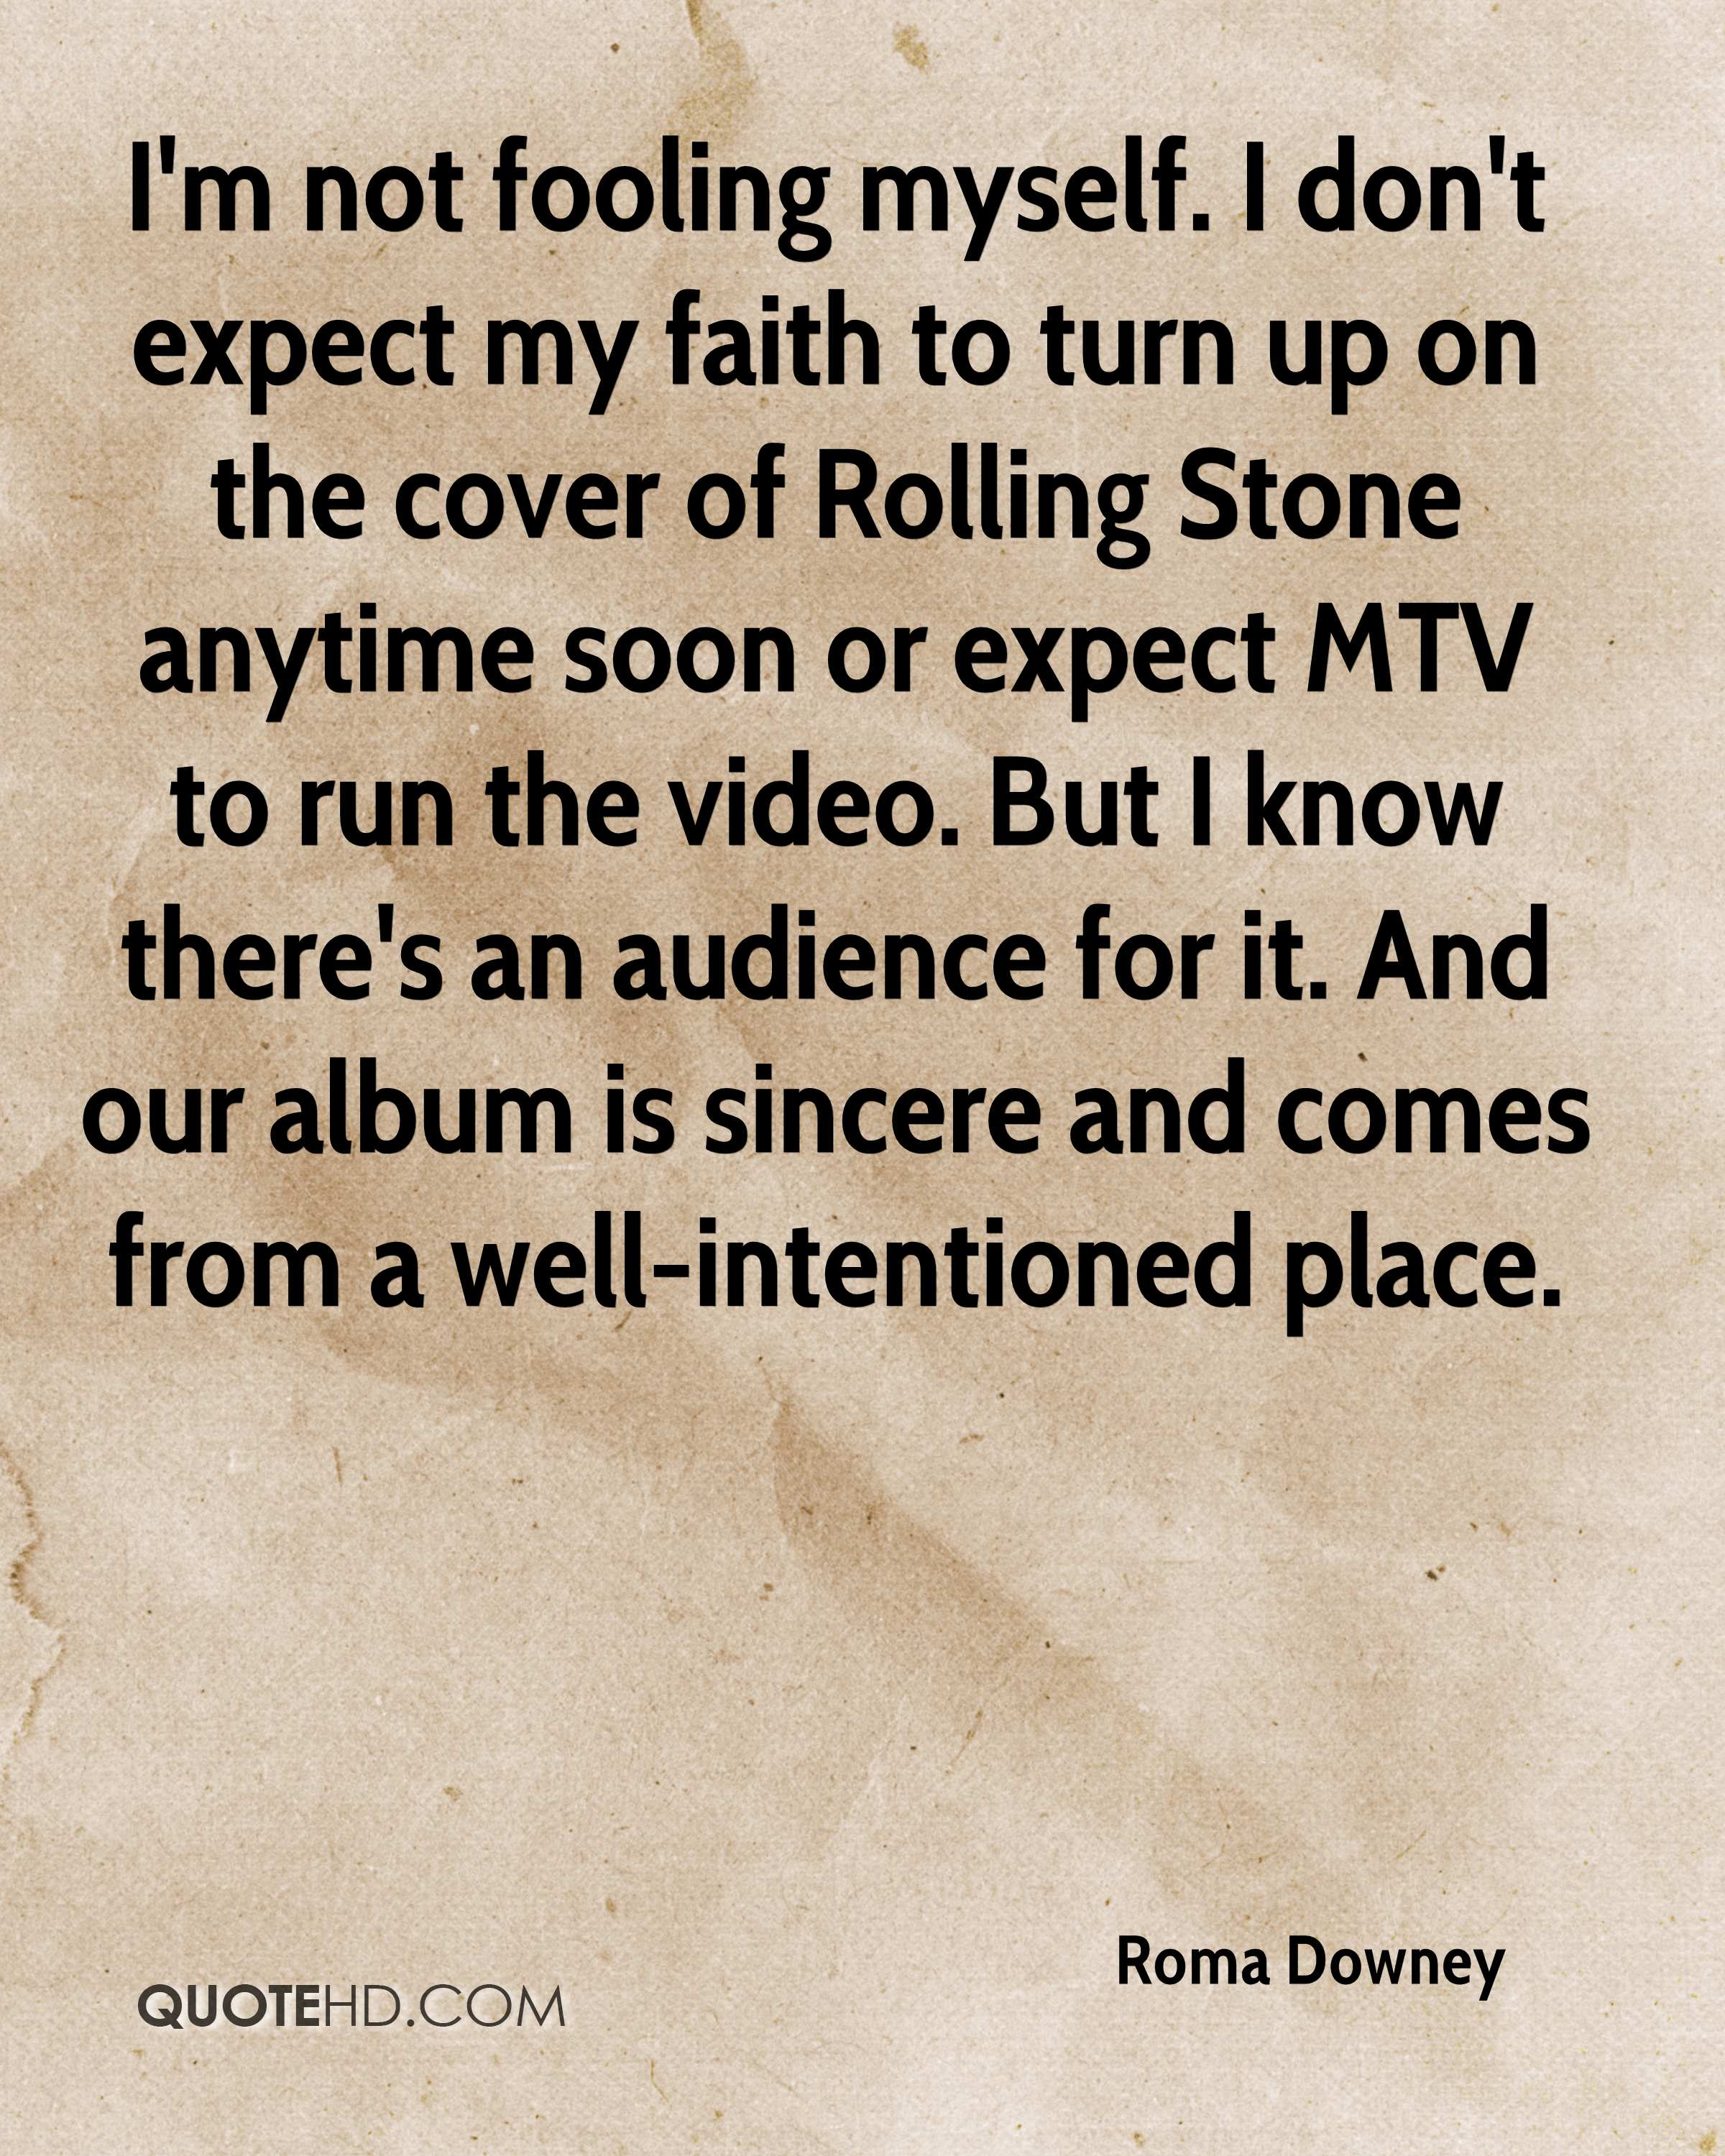 I'm not fooling myself. I don't expect my faith to turn up on the cover of Rolling Stone anytime soon or expect MTV to run the video. But I know there's an audience for it. And our album is sincere and comes from a well-intentioned place.